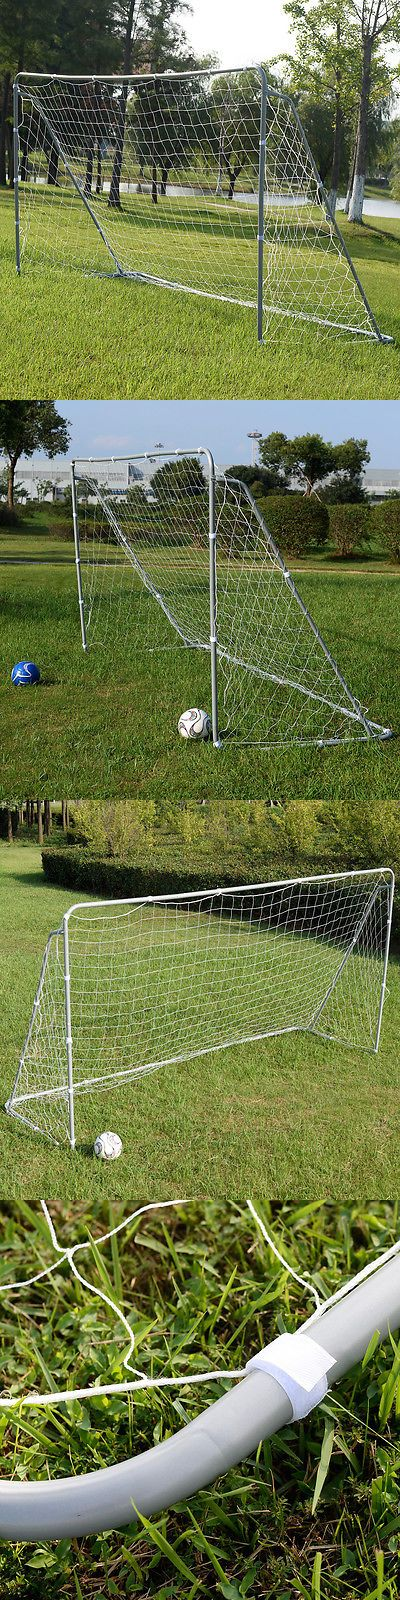 Goals and Nets 159180: 12 X 6 Soccer Goal Football W/Net Straps, Anchor Ball Training Sets BUY IT NOW ONLY: $55.89